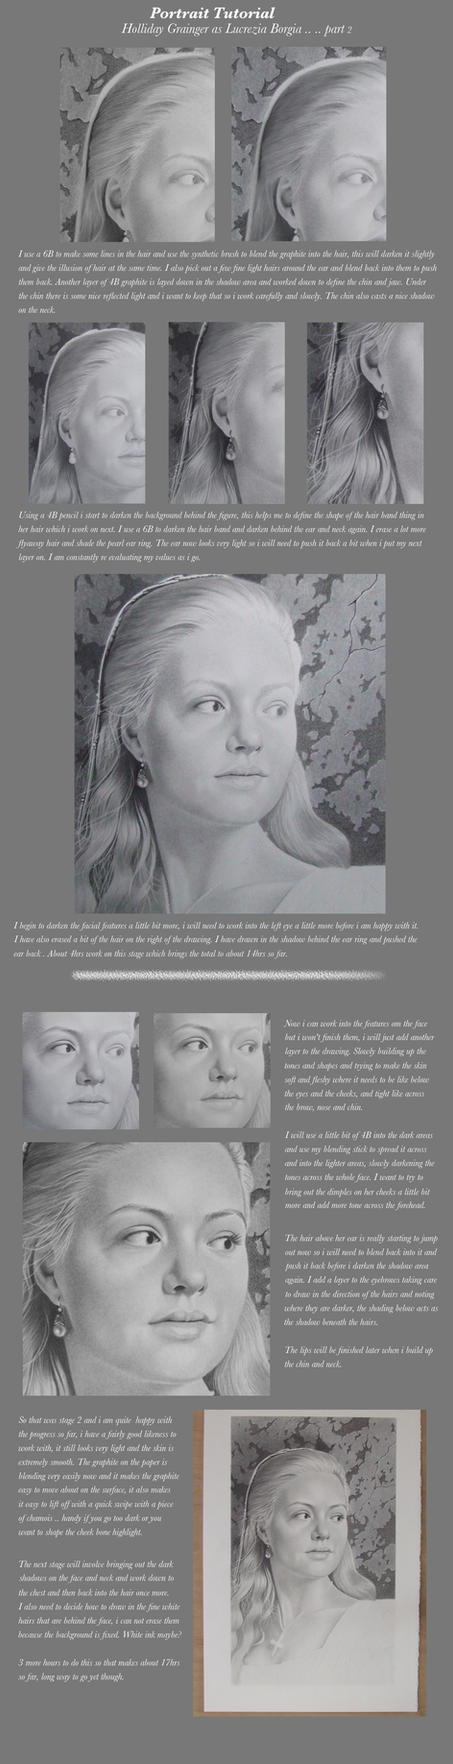 Step by step portrait 2 by markstewart